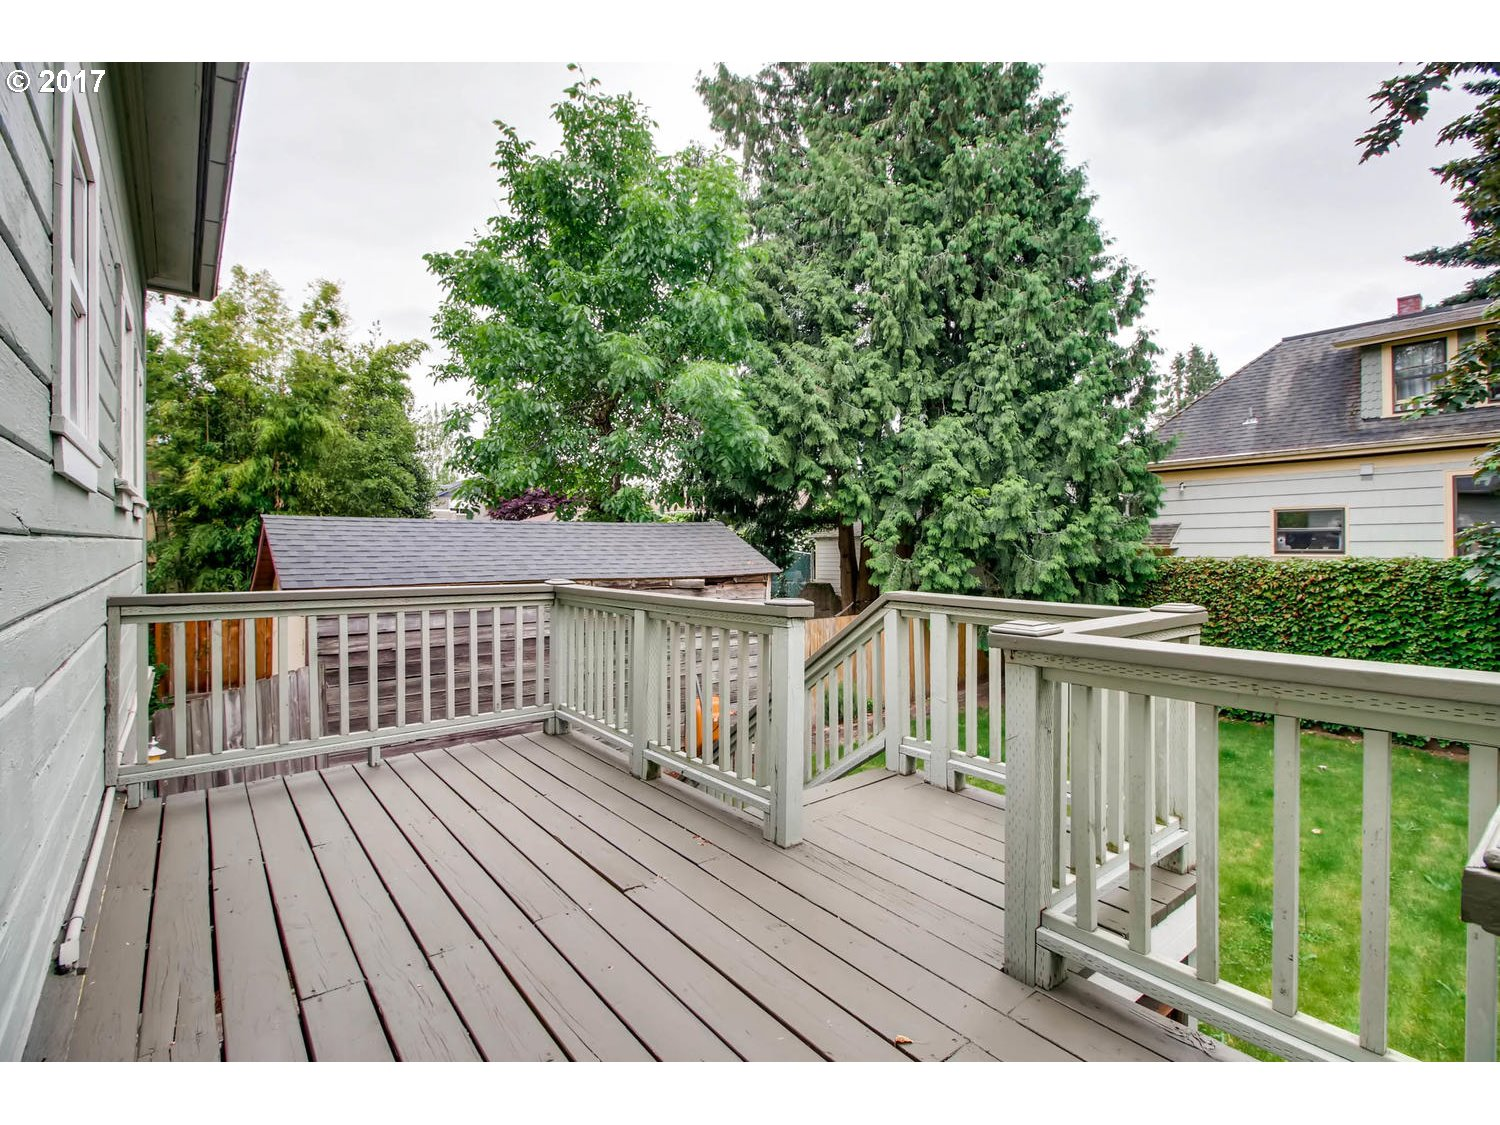 3310 SE YAMHILL ST Portland, OR 97214 - MLS #: 17690594